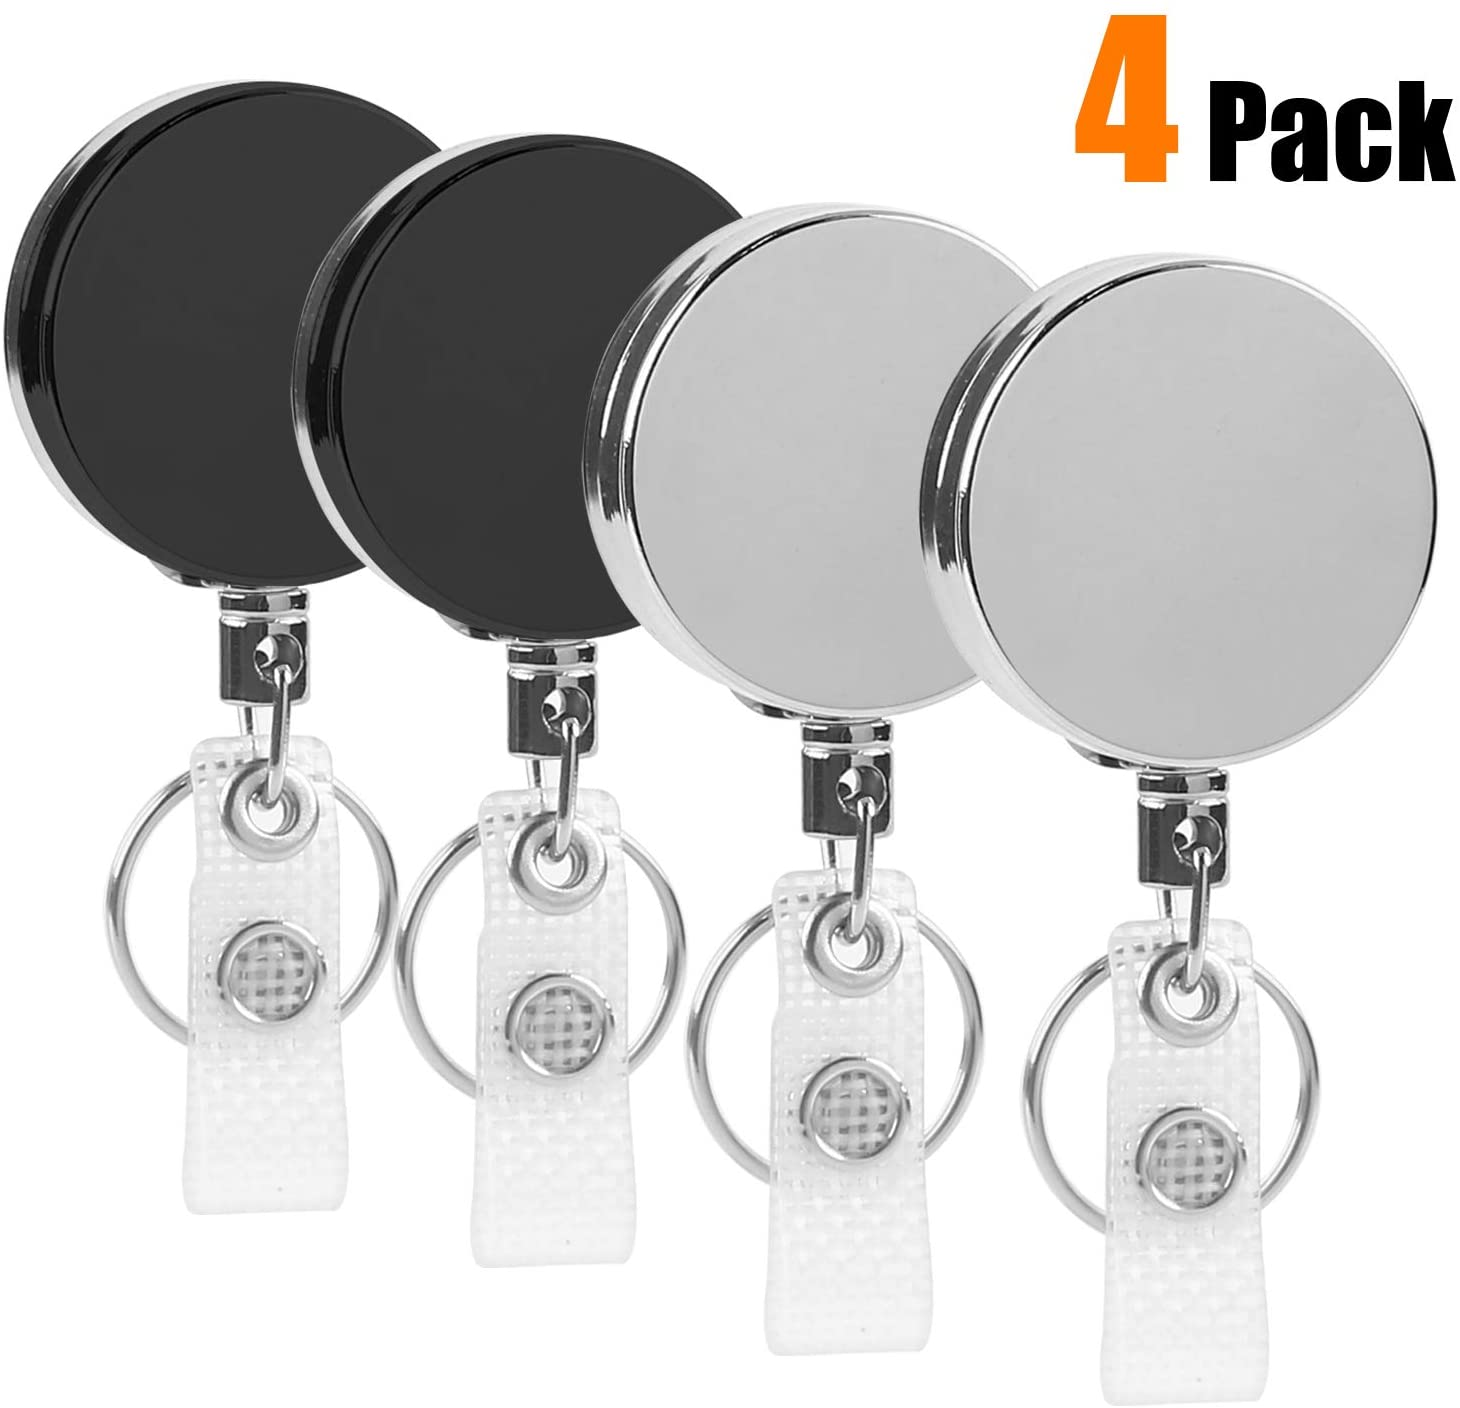 4 Pack Heavy Duty Retractable Badge Holder Reel, Metal ID Badge Reel with Clip & Key Ring for ID Key Card Badge & Name Card Keychain - Belt Clip, 27 inches Steel Wire Cord